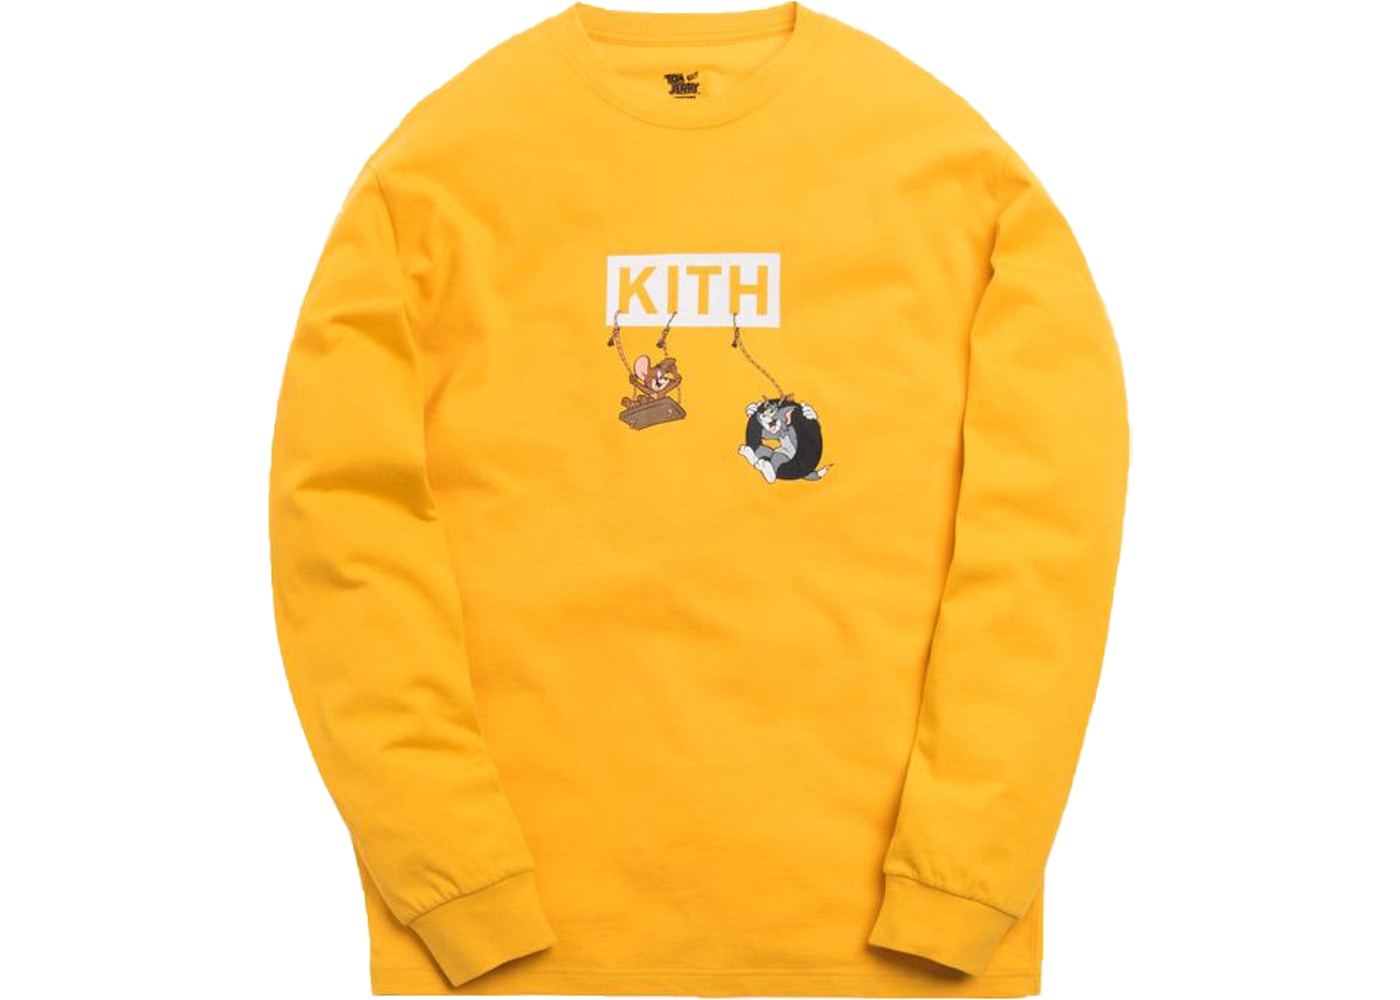 45423de2 Kith x Tom & Jerry L/S Friends Tee Yellow • Buy or Sell